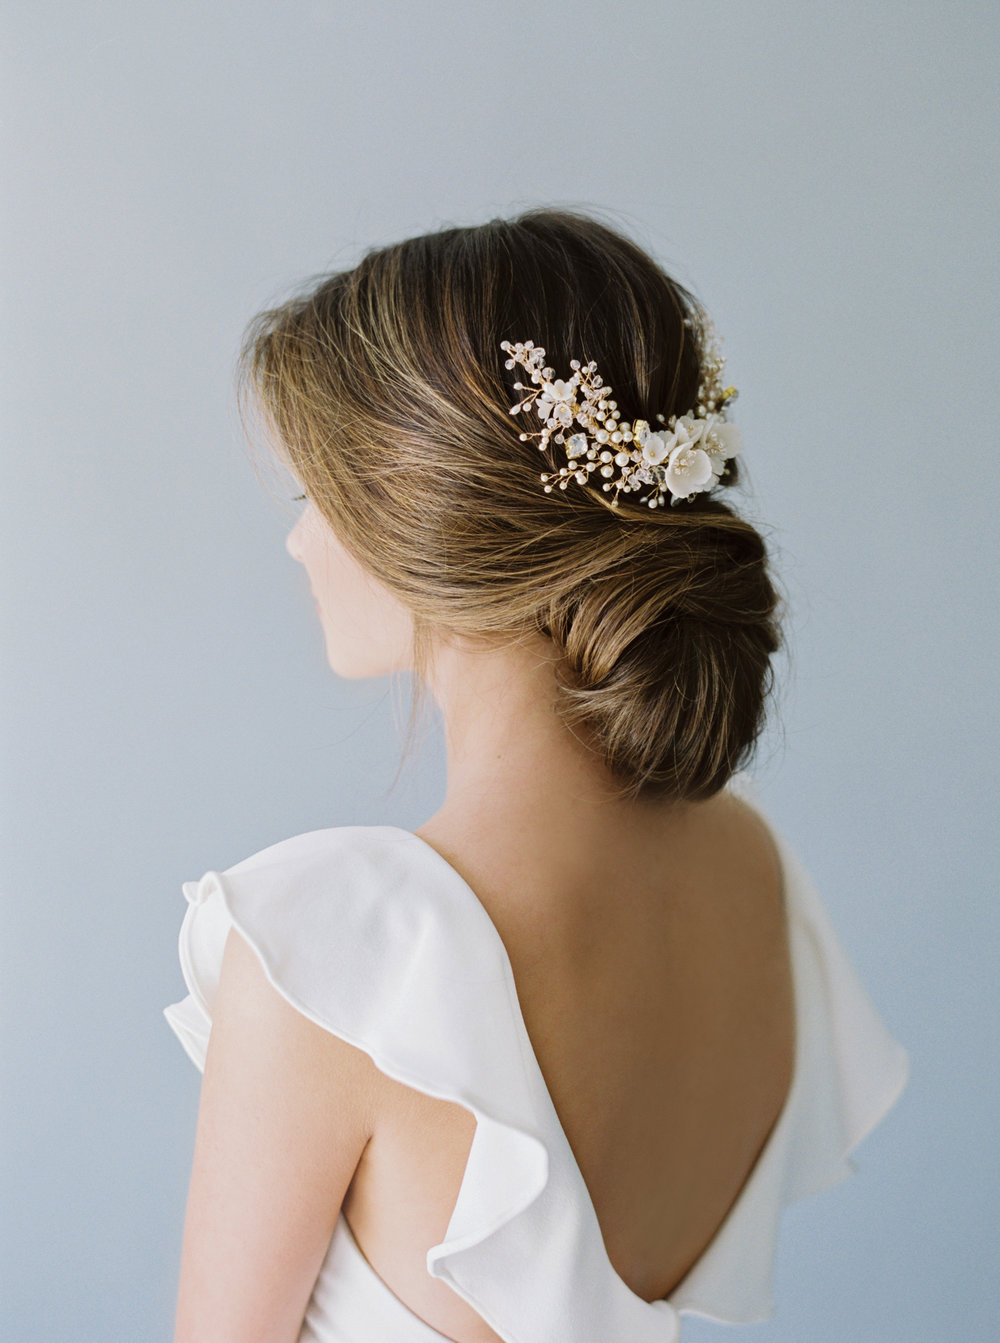 This unique twist was one of my favorites, and highlighted the elegant lines of the neck, as well as showing off the hair piece, beautifully.  Hair @morganoreeda Makeup @robinopal_ Hair adornment @_allaboutromance_